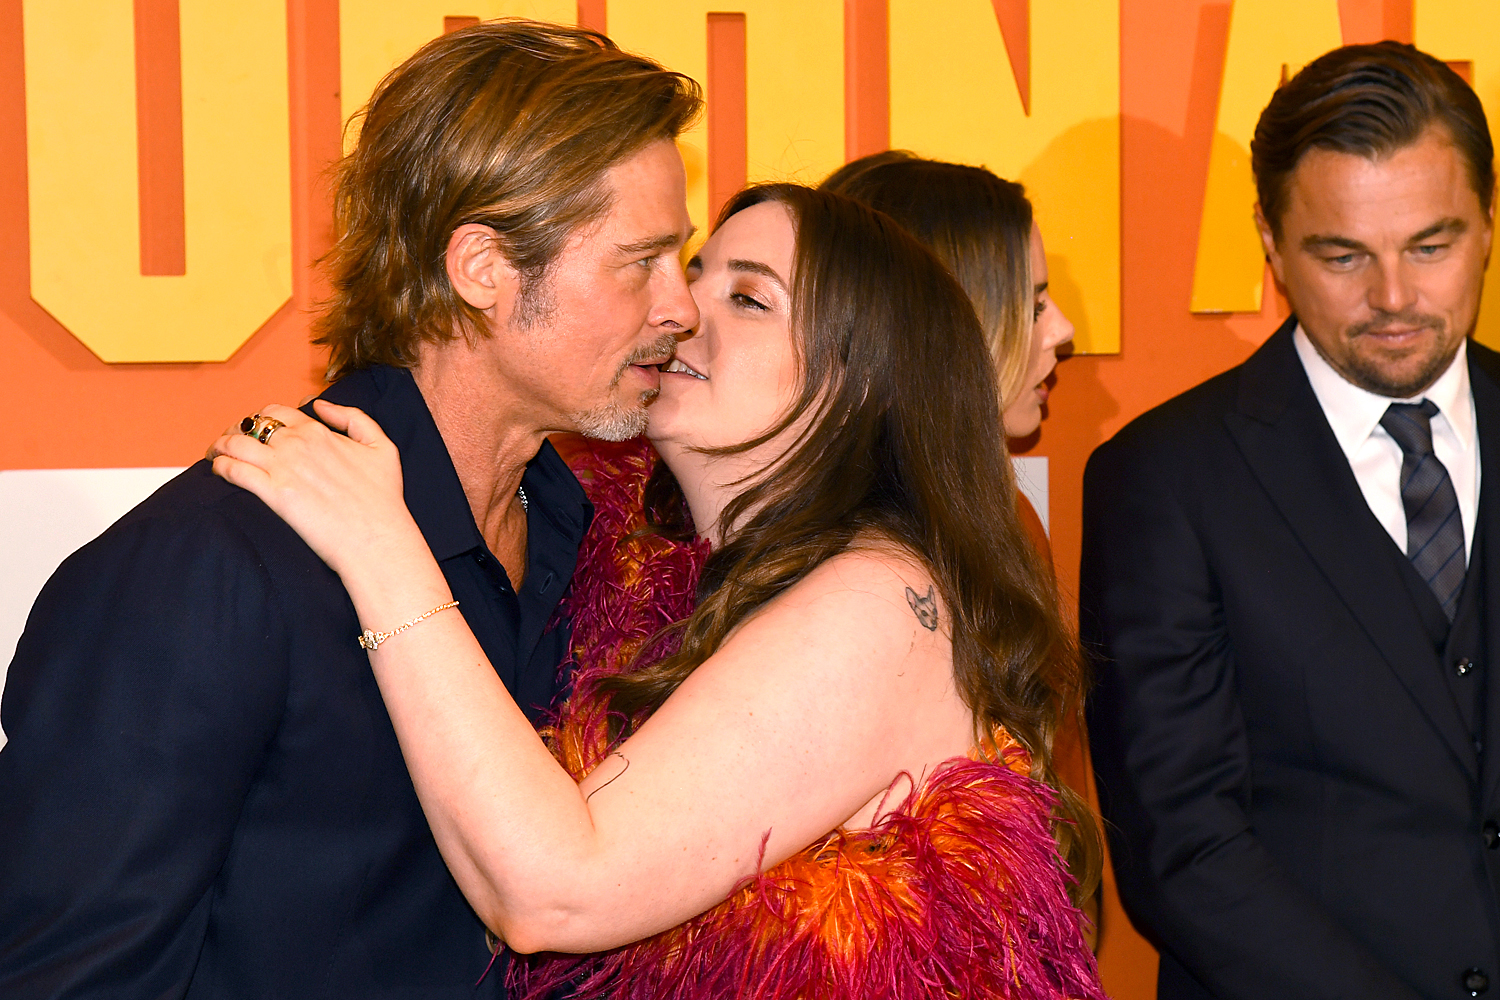 Brad Pitt and Lena Dunham